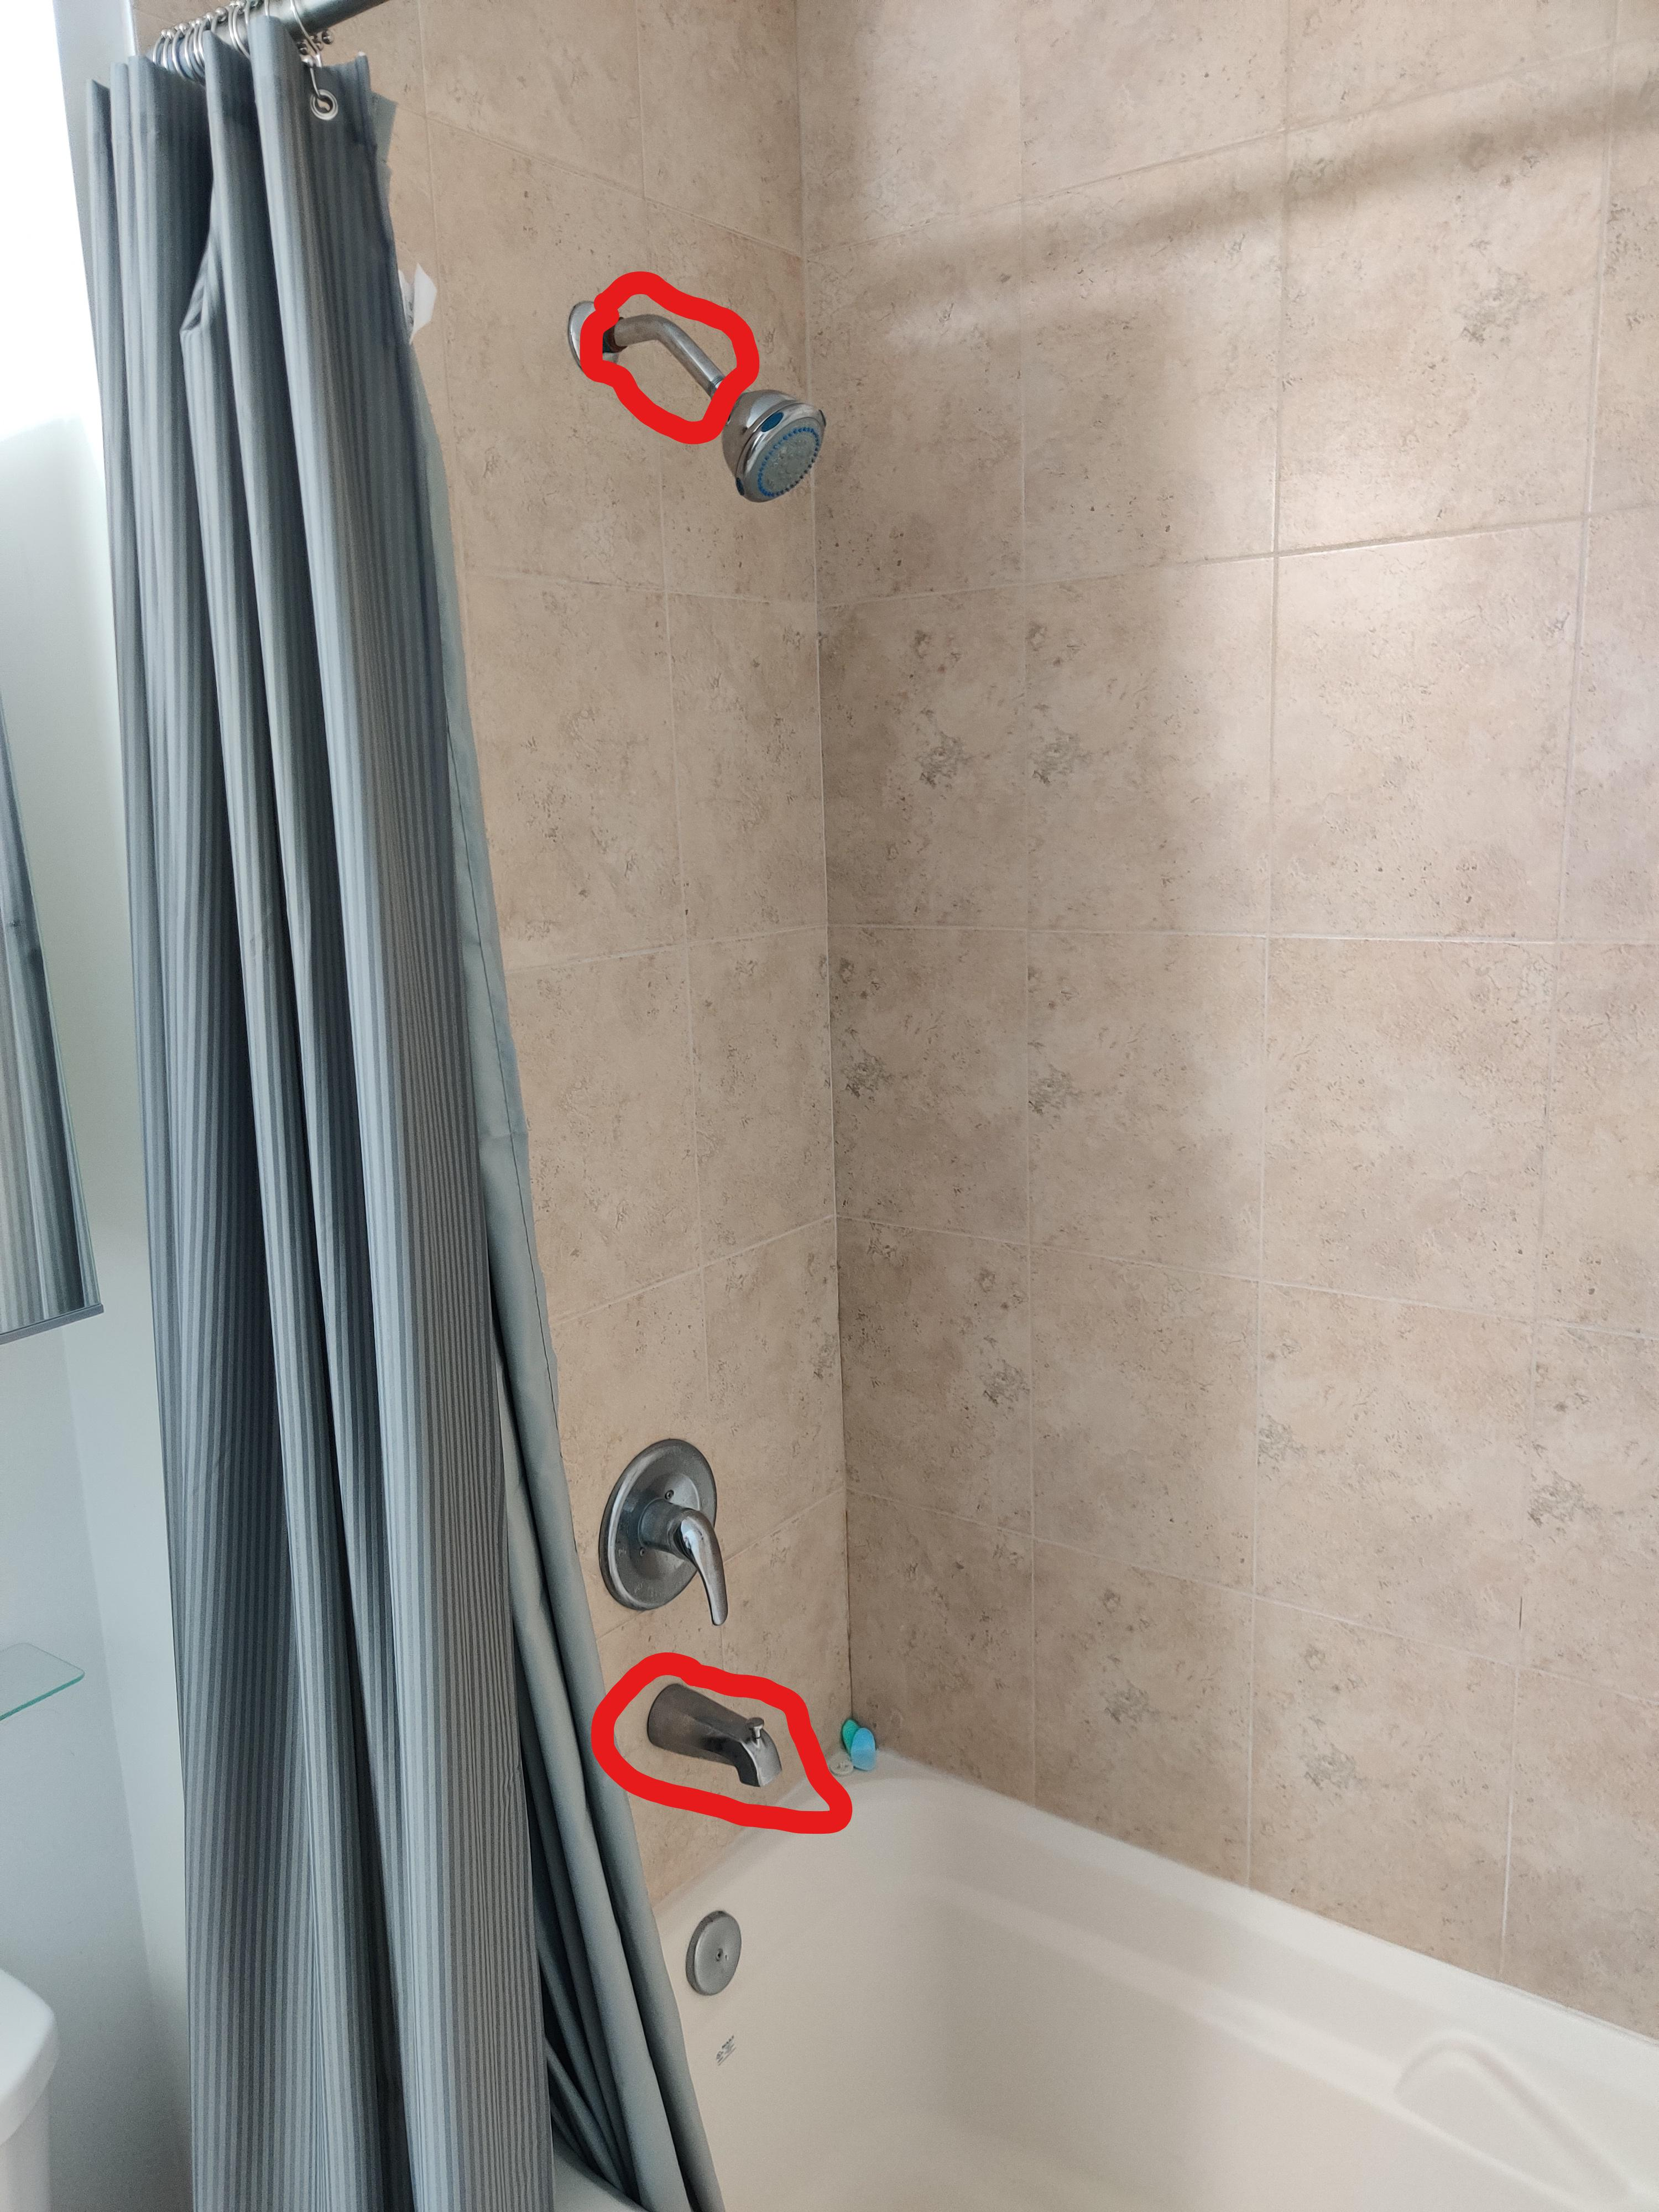 i want to replace the bathtub faucet